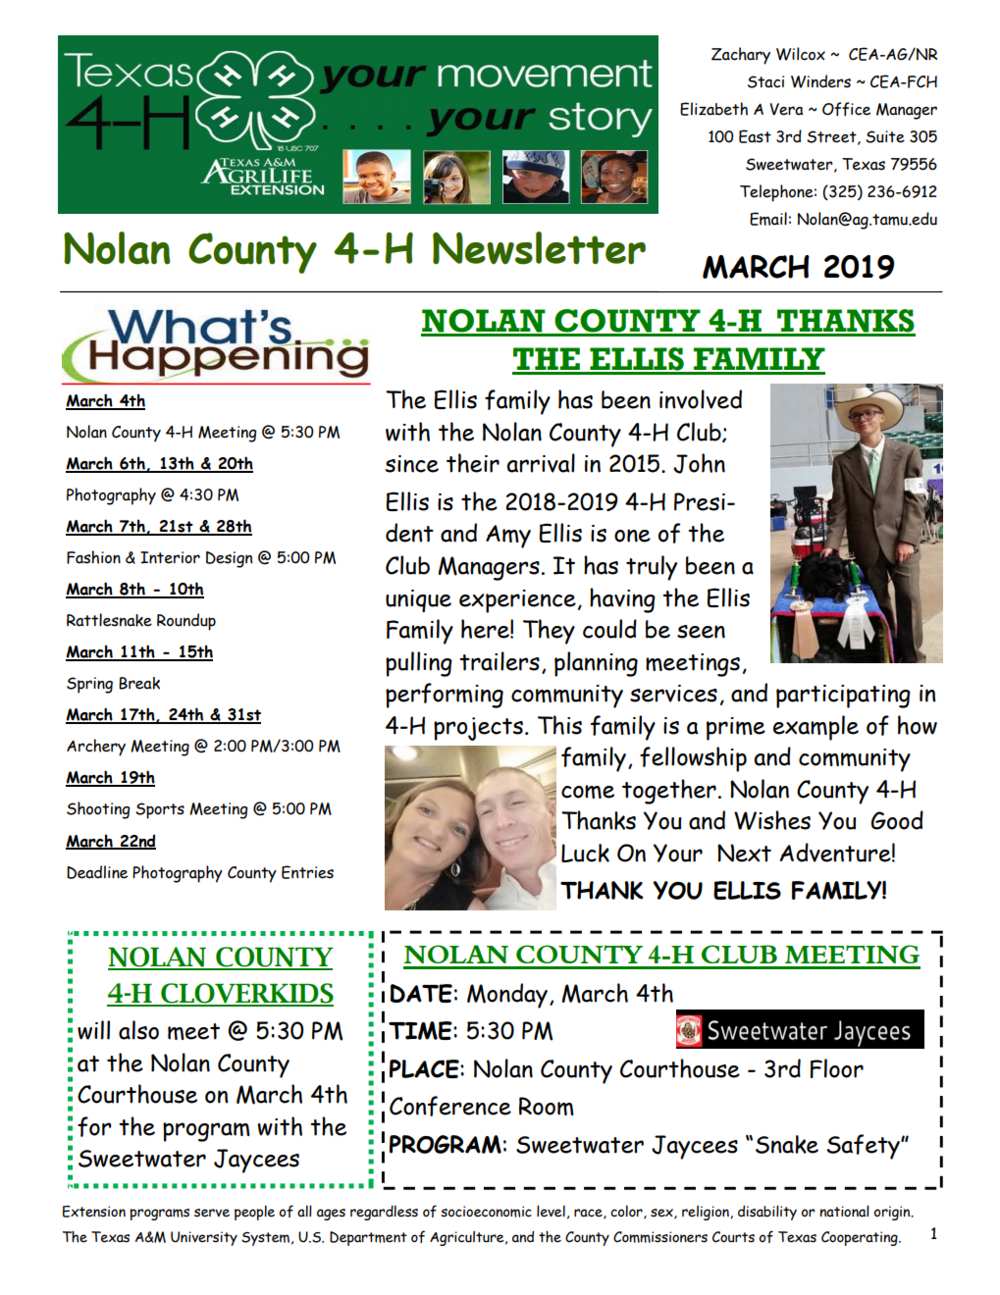 Nolan_County_4H_Newsletter-March_2019_P1.png